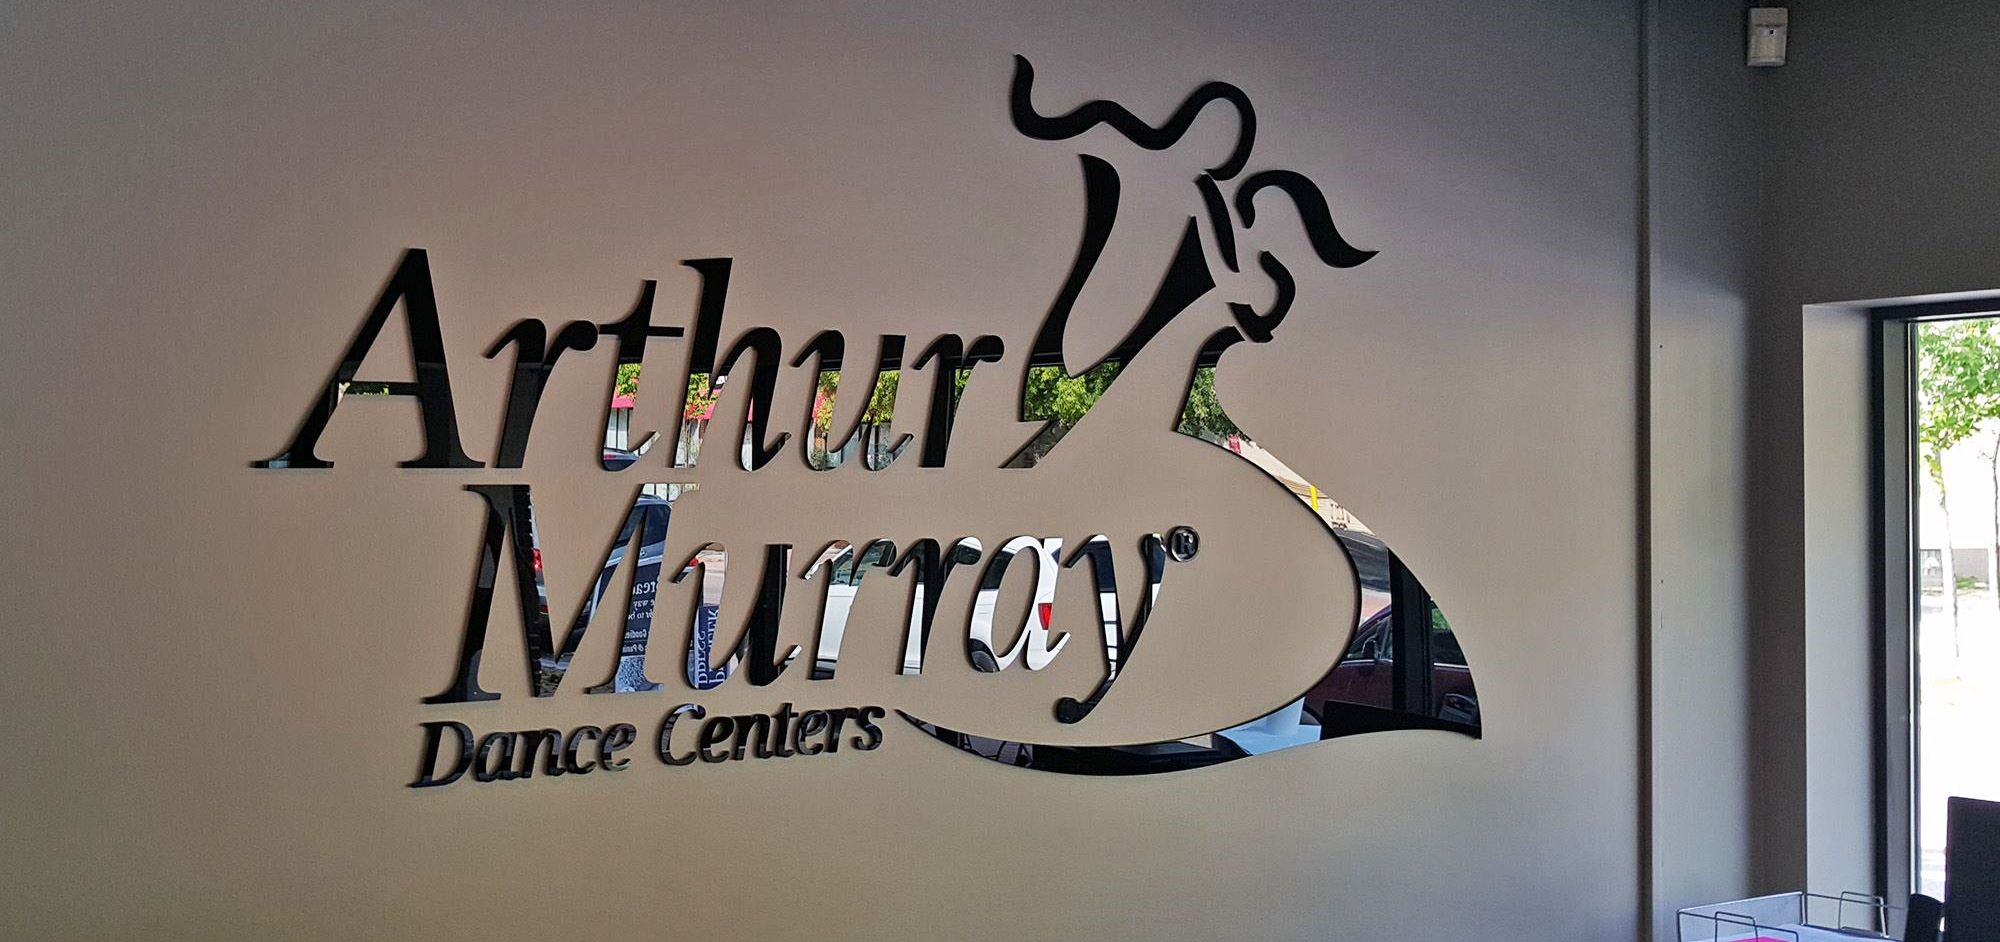 Dimensional Logo Sign for Dance Centers